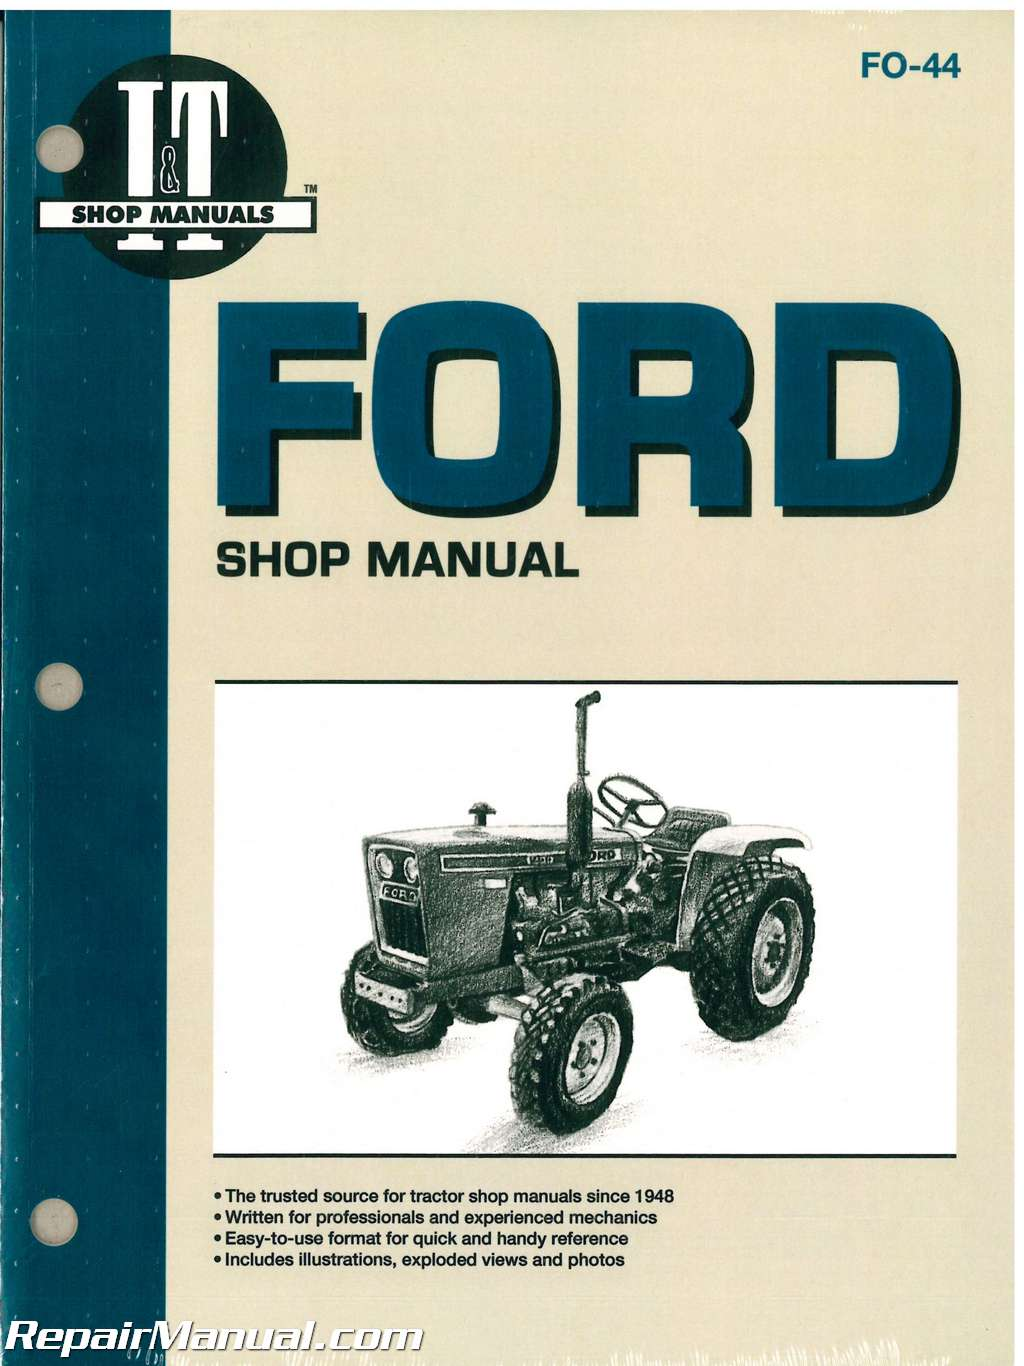 ford new holland 1100 1110 1200 1210 1300 1310 1500 1510 1700 1710 rh repairmanual com